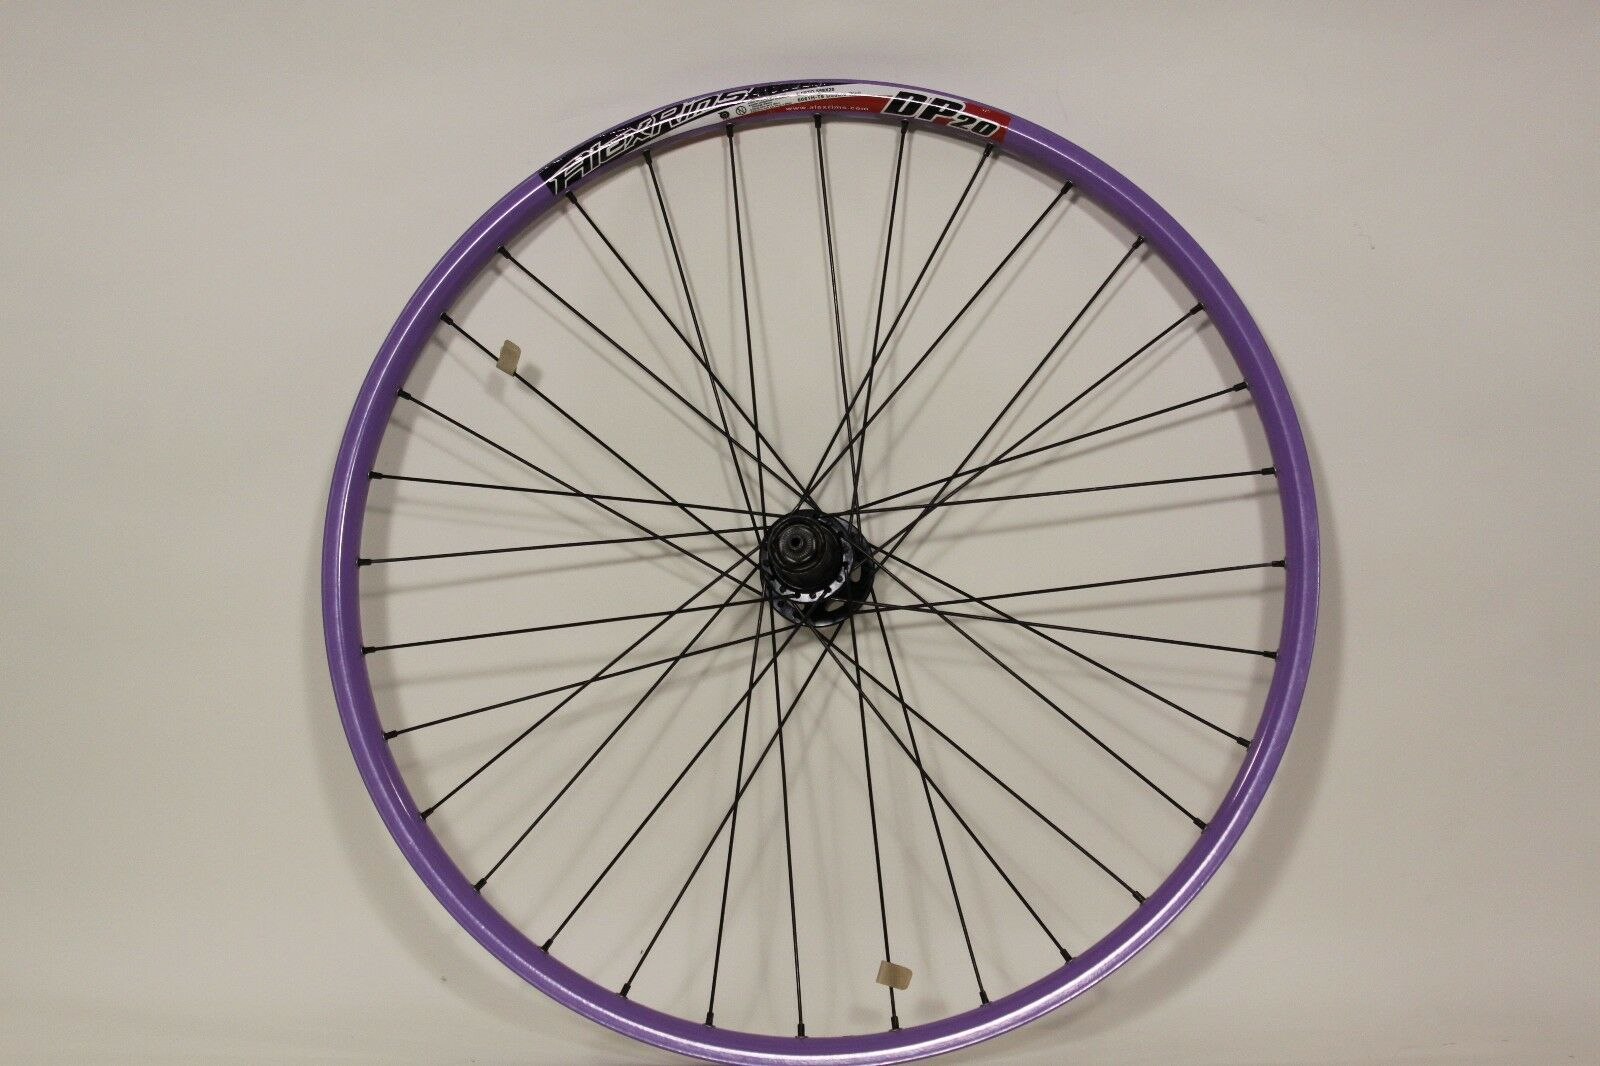 26 inch Disc Wheelset Alex DP20 & Origin8 Hub 8-9-10 Spd 135 & 100mm 9mm QR WS7